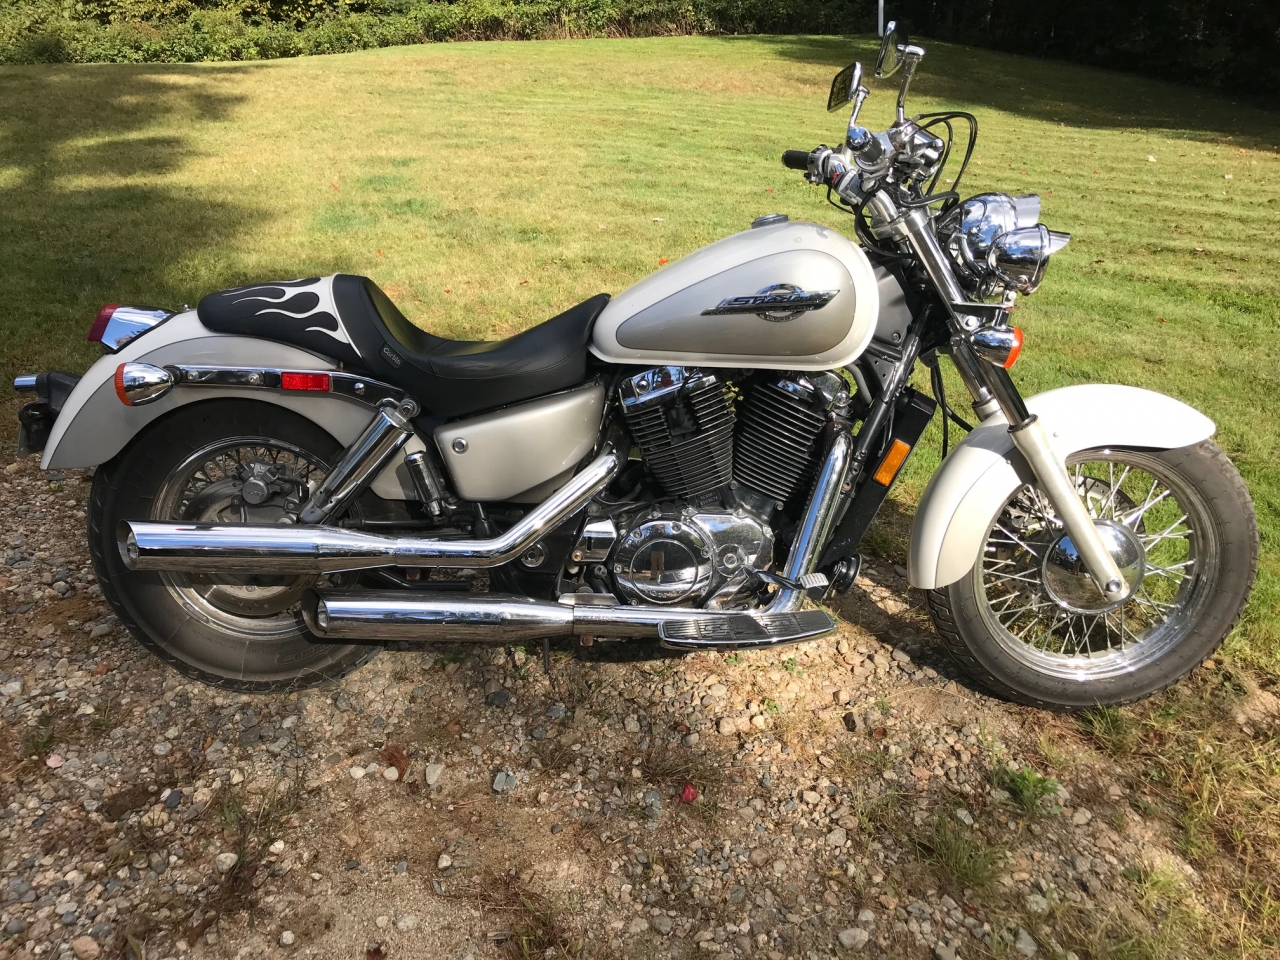 hight resolution of 1996 honda shadow ace 1100 made in america currently own for sale